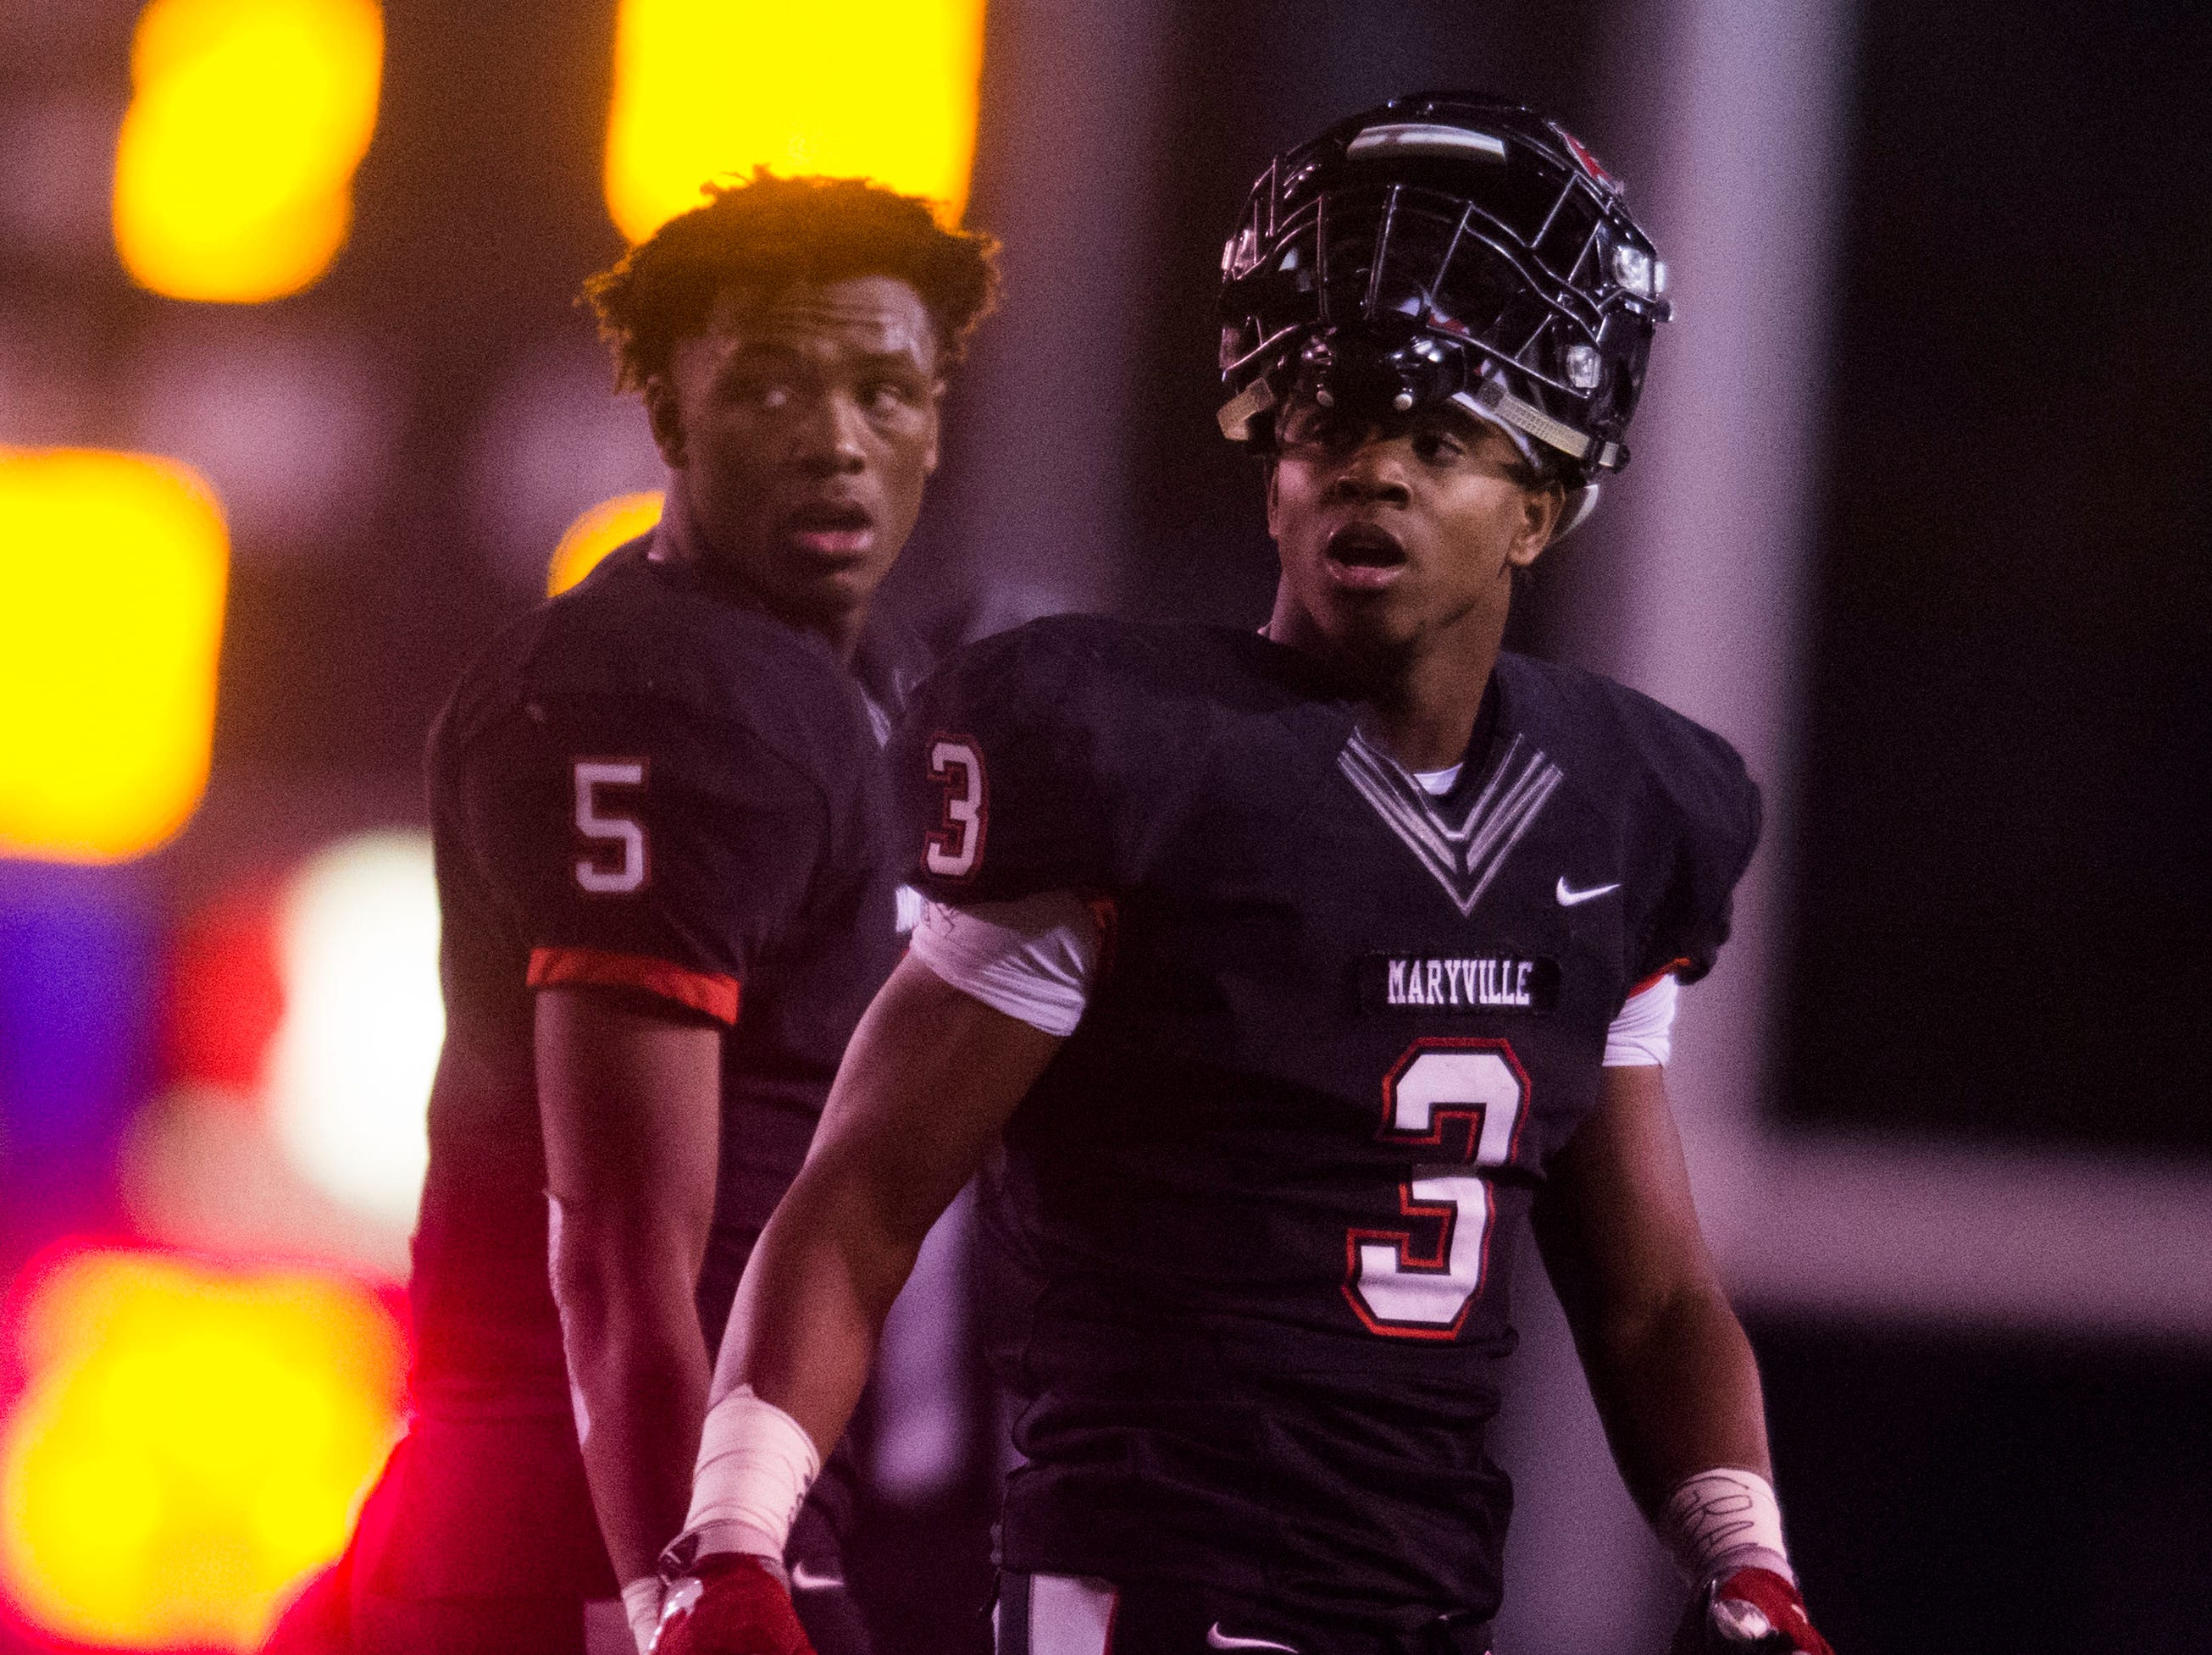 Maryville's DaVon Kimble (5) and Maryville's A.J. Davis (3) walk on the field during a 6A quarterfinal game between Maryville and Farragut at Maryville Friday, Nov. 16, 2018. Maryville defeated Farragut 26-10.